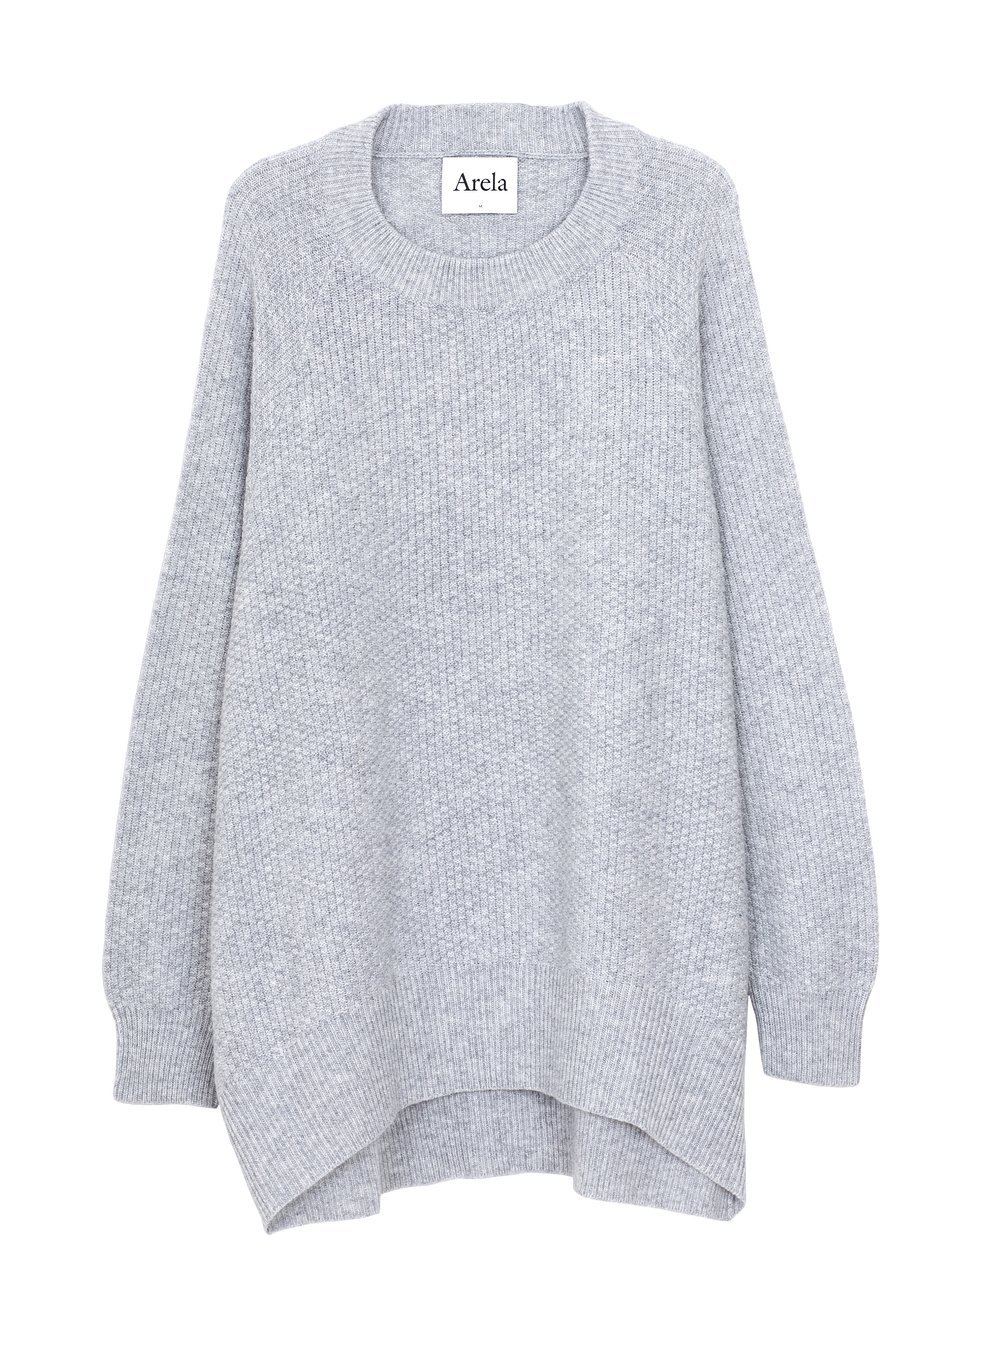 ARELA Disa Cashmere Sweater In Light Grey